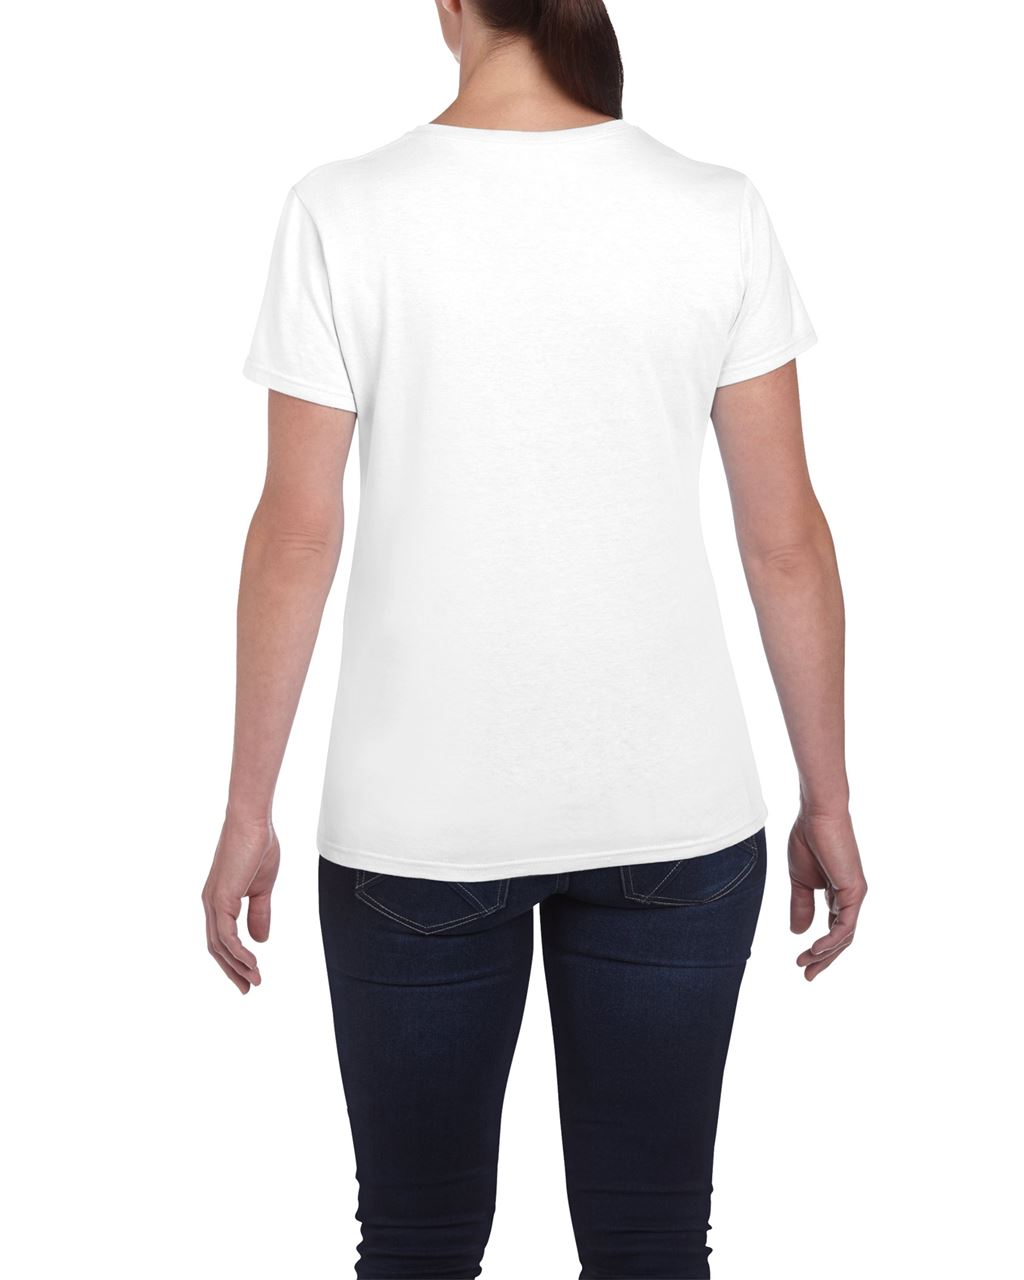 GIL5000 / GILDAN HEAVY COTTON LADIES T-SHIRT